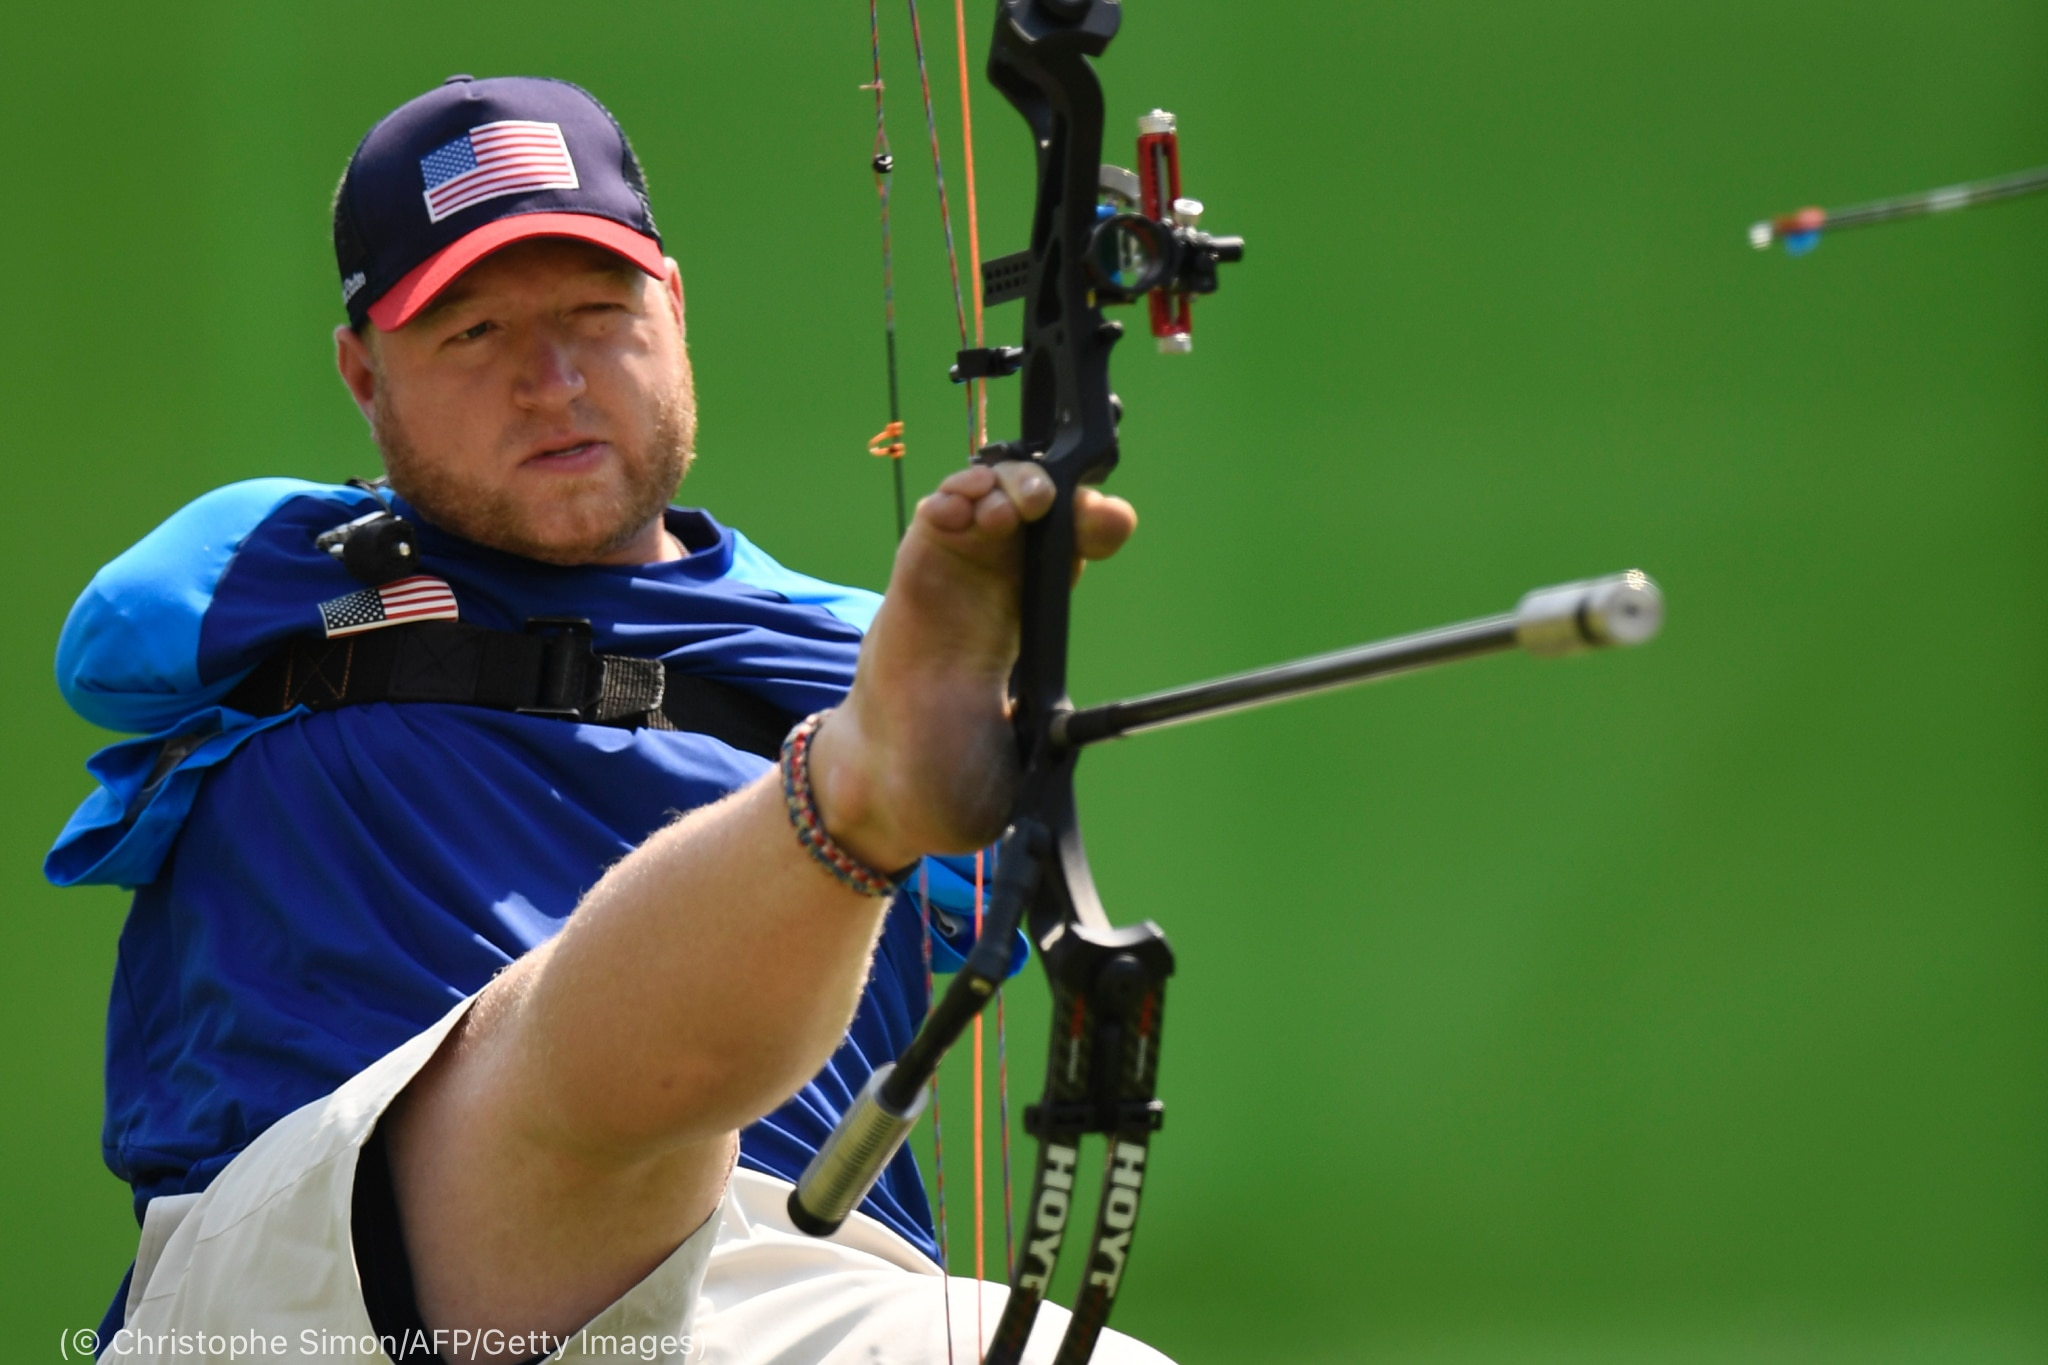 Man using his feet to do archery (© Christophe Simon/AFP/Getty Images)